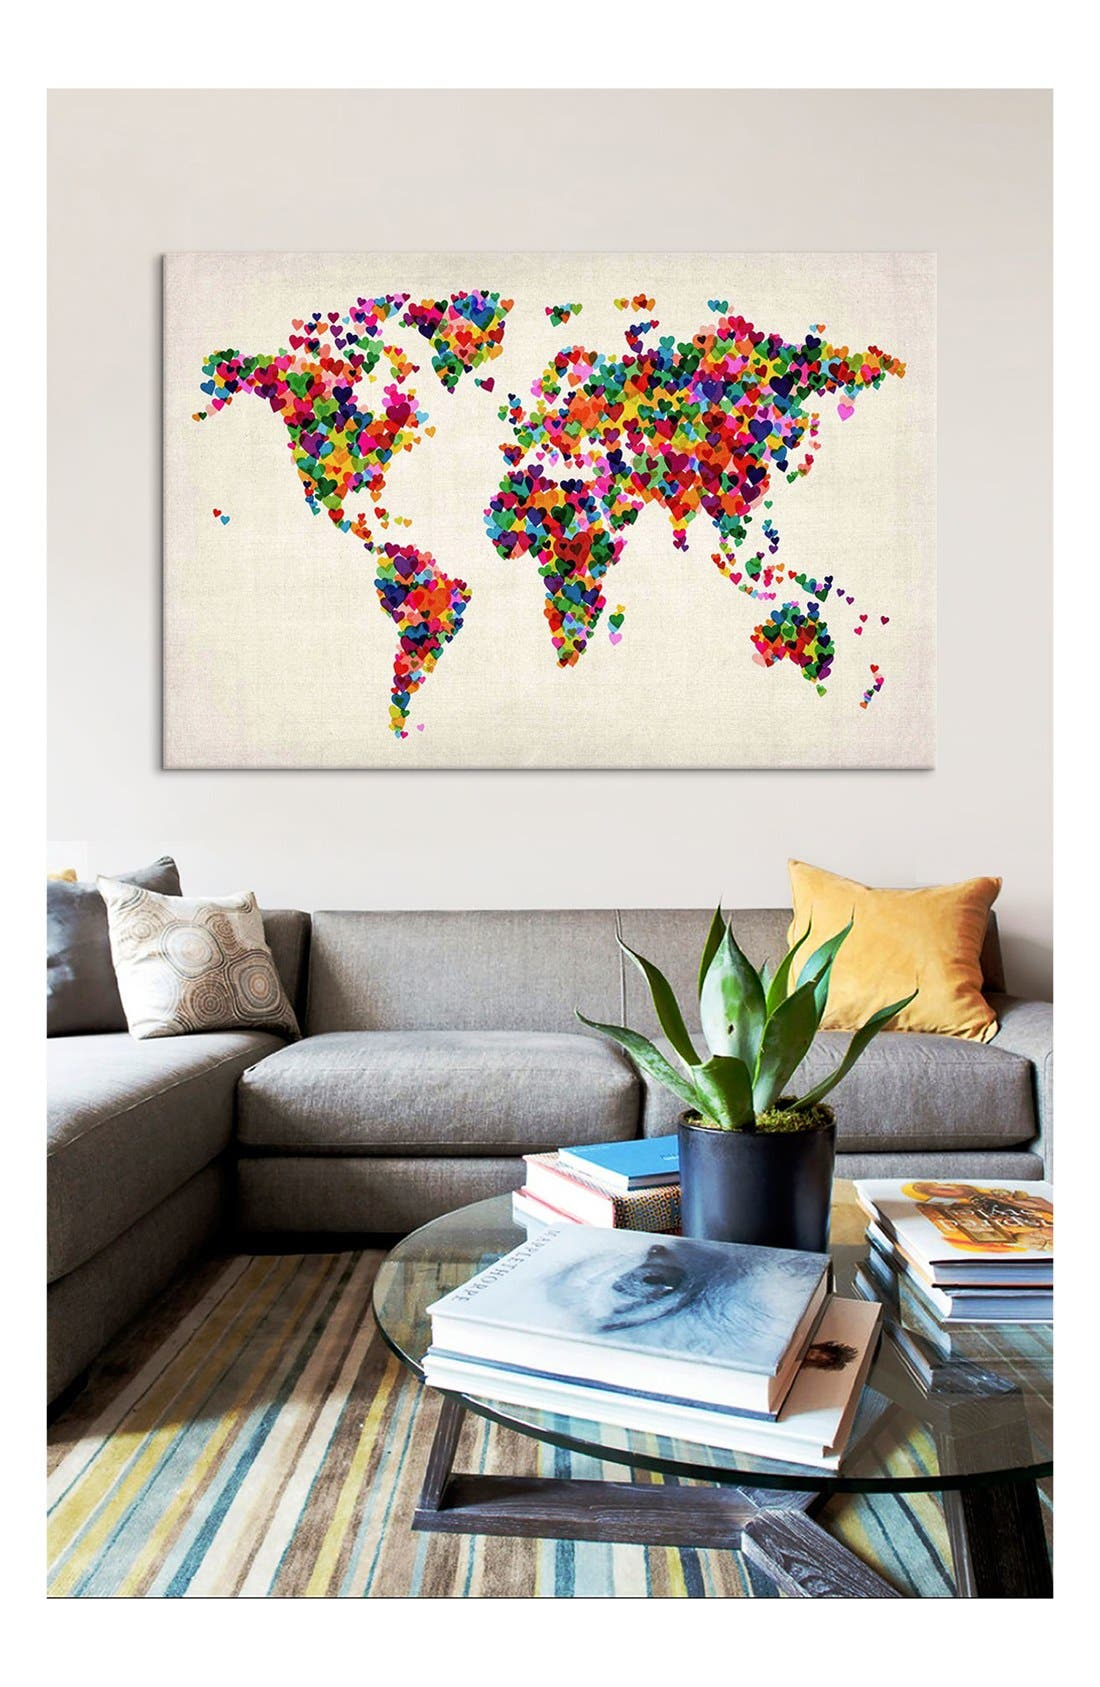 'World Map Hearts - Michael Thompsett' Giclée Print Canvas Art,                             Alternate thumbnail 2, color,                             White/ Multi